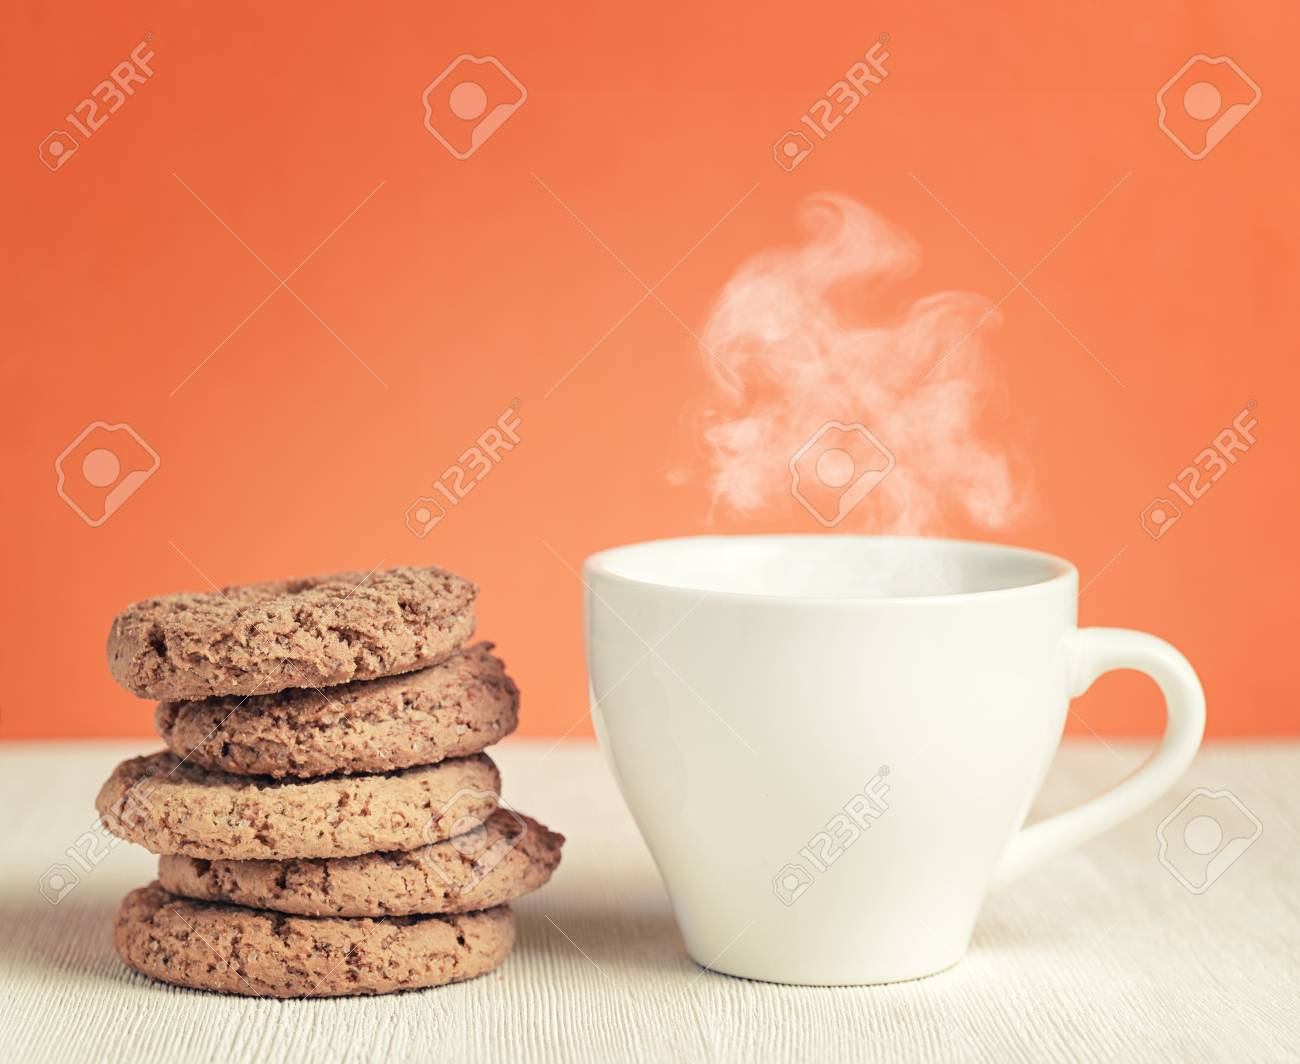 Oatmeal cookies and cup of coffee on wooden table. Stock Photo - 25254120